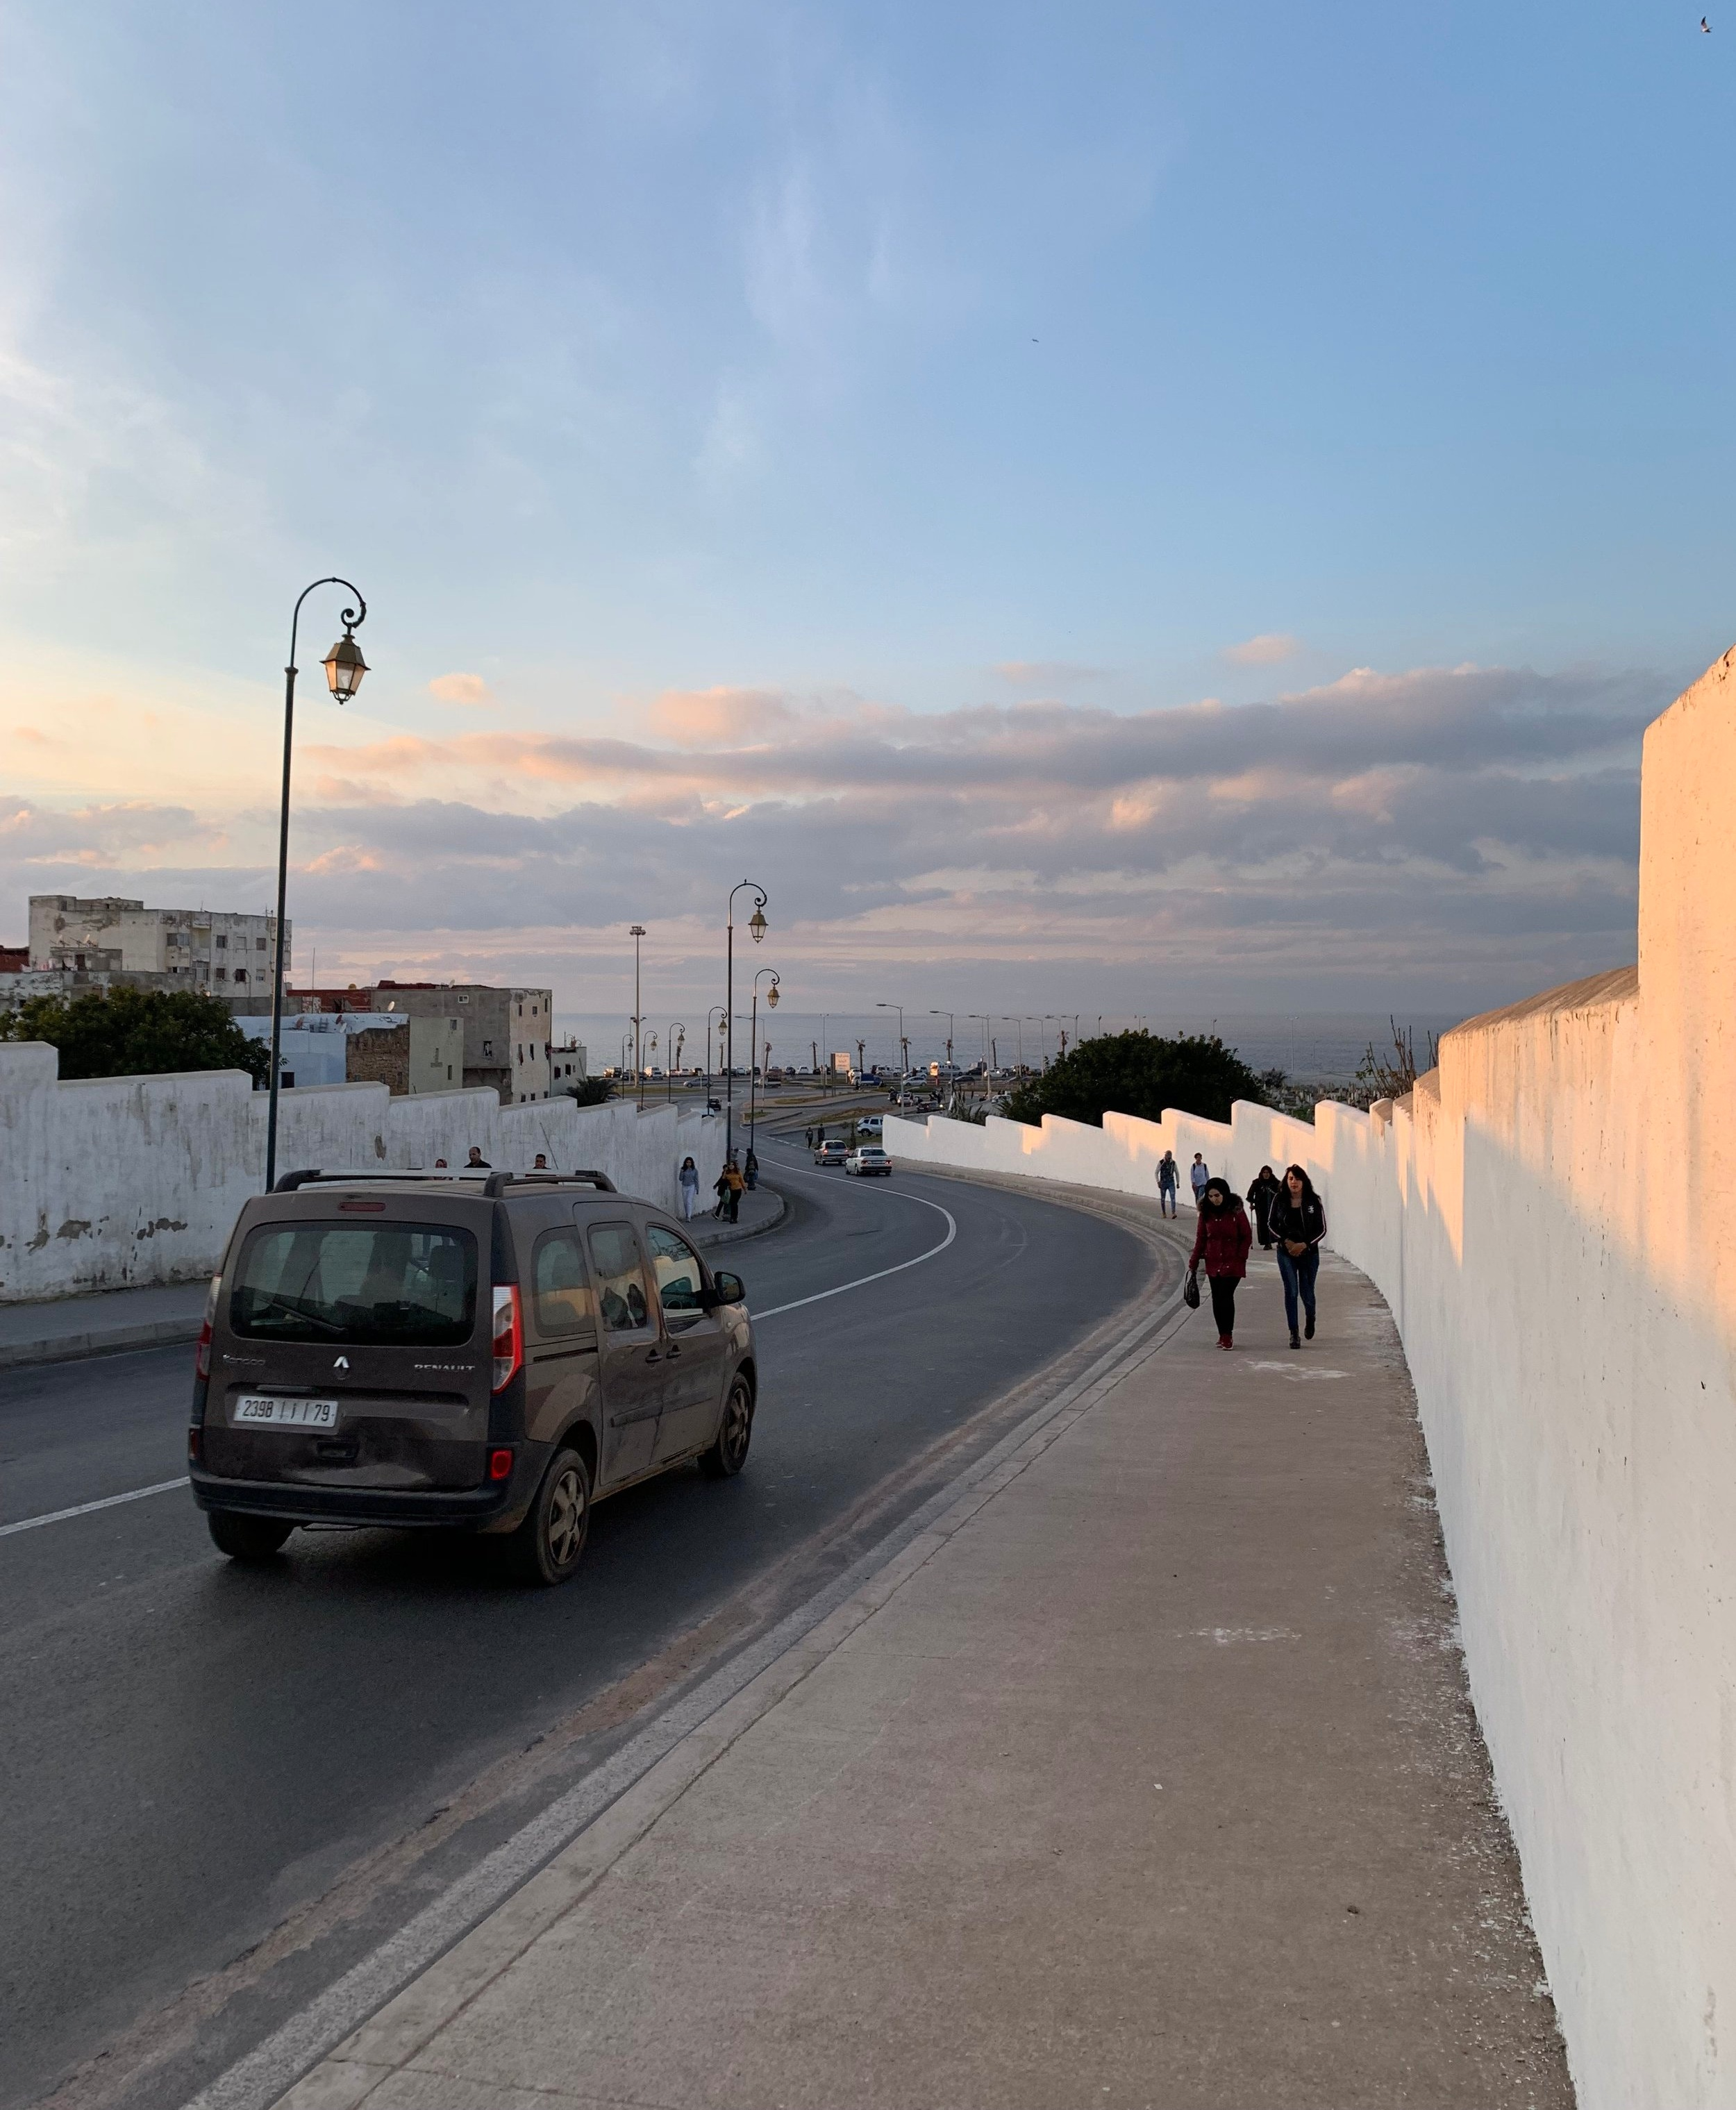 Avenue Al Marsa leads down to the waterfront from the ancient Portuguese fort known as the Kasbah of the Udayas. It borders an incredibly large cemetery with tombstones all facing toward the holy city of Mecca. Photo Credit: M. Aboko-Cole, Spring 2019.